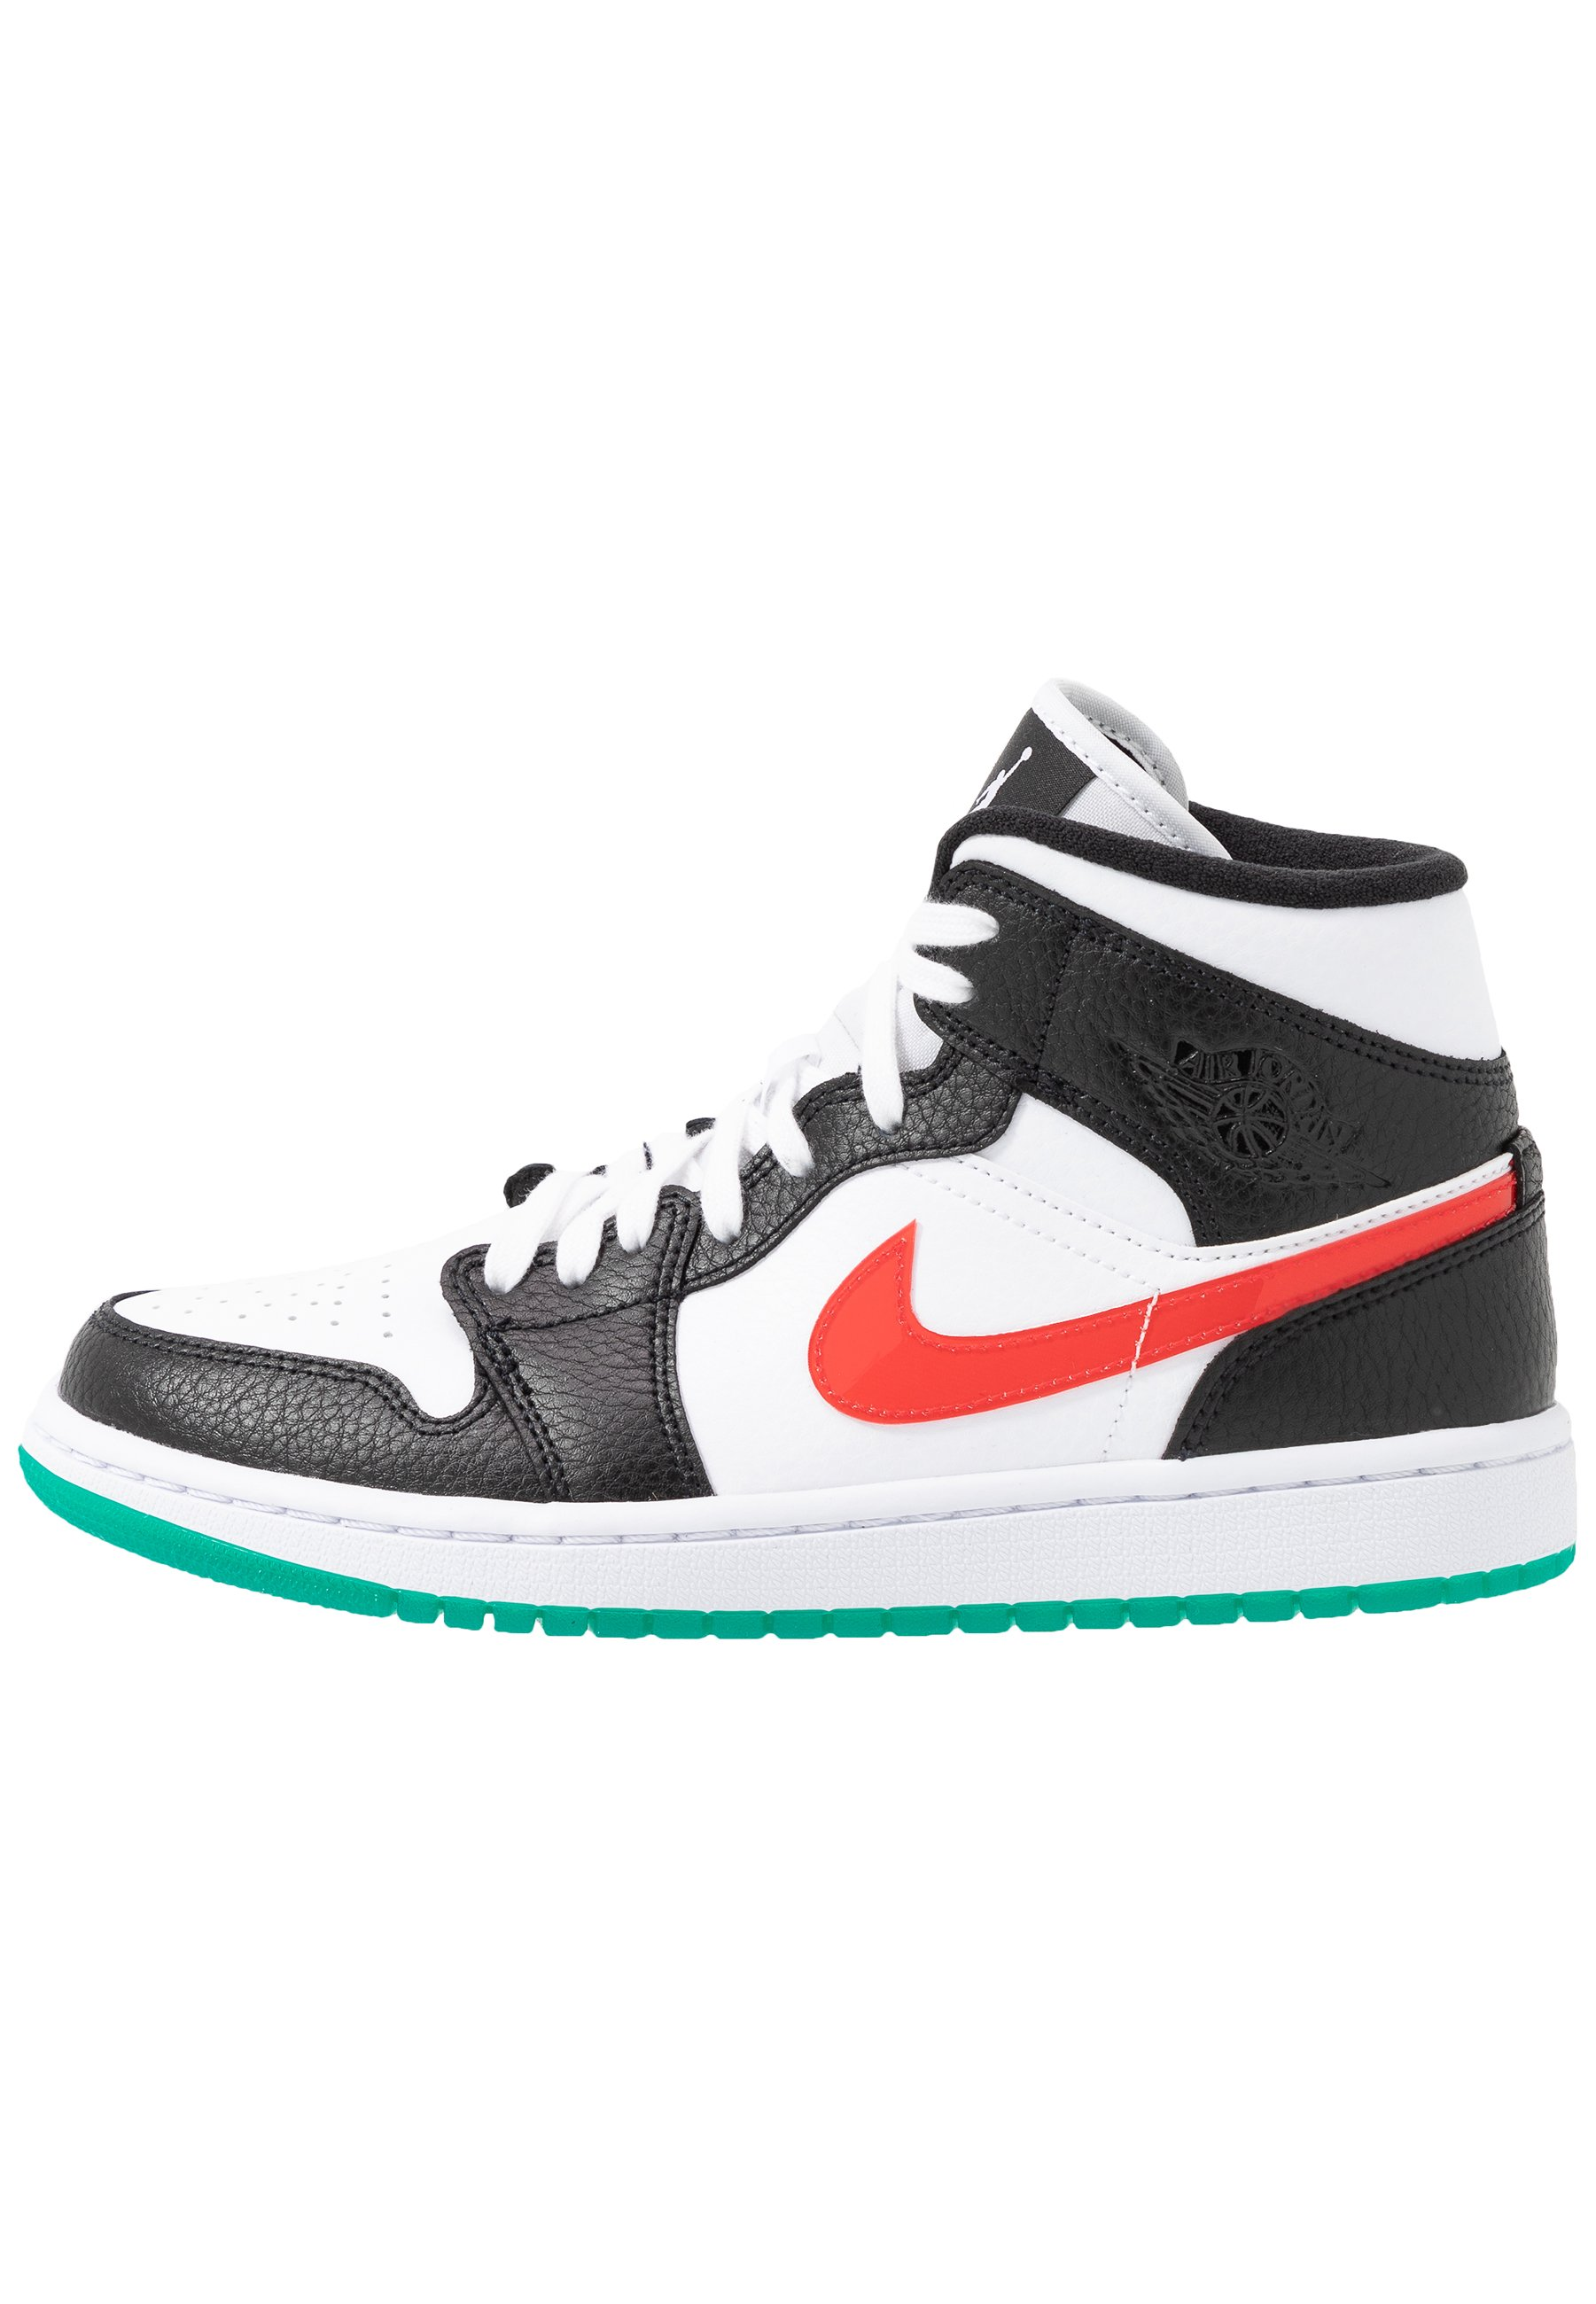 AIR 1 MID - High-top trainers - black/university red/white/lucid  green/university gold